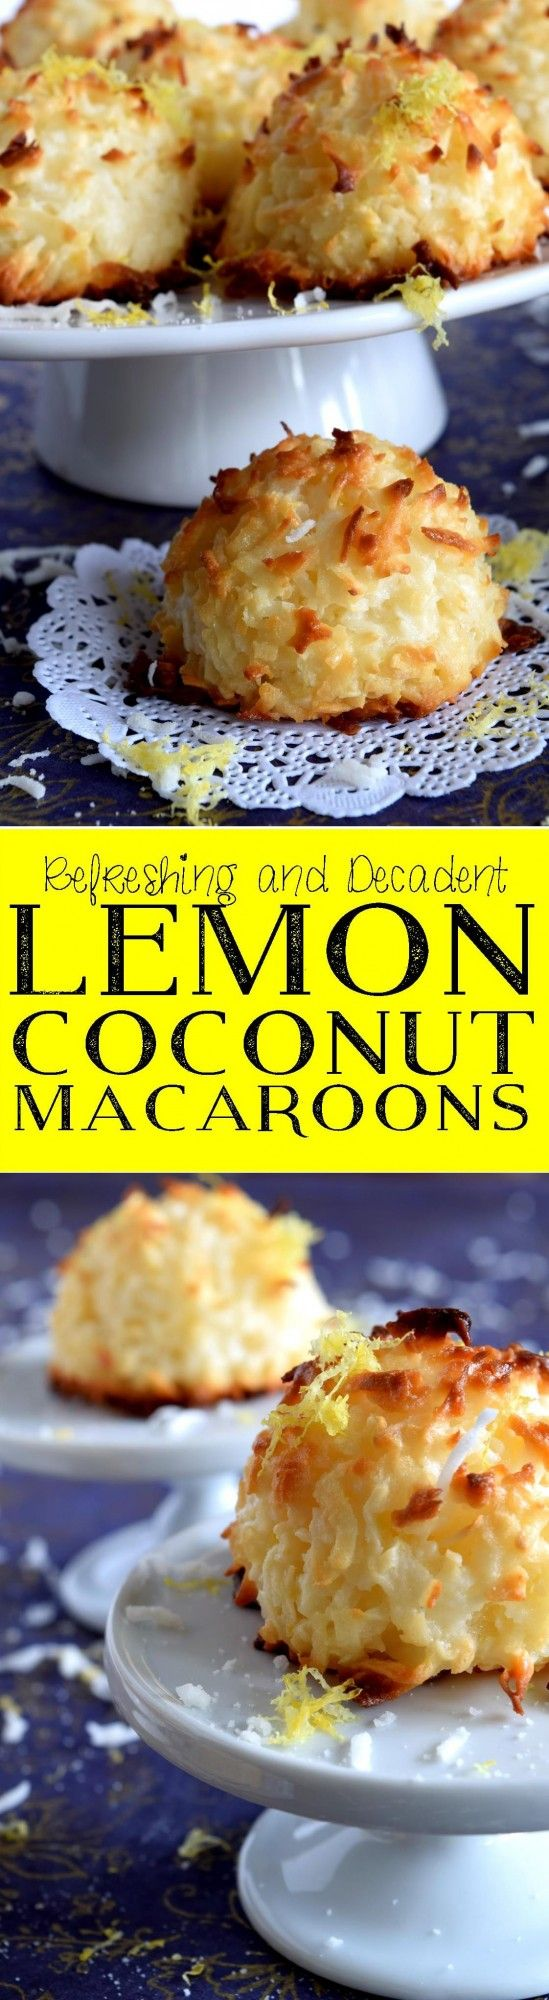 Lemon Coconut Macaroons - The popular Coconut Macaroon just got a whole lot better – with lemon!  Fresh lemon juice and zest gives this classic dessert a brand new taste and vibe; a perfect afternoon pick-me-up!